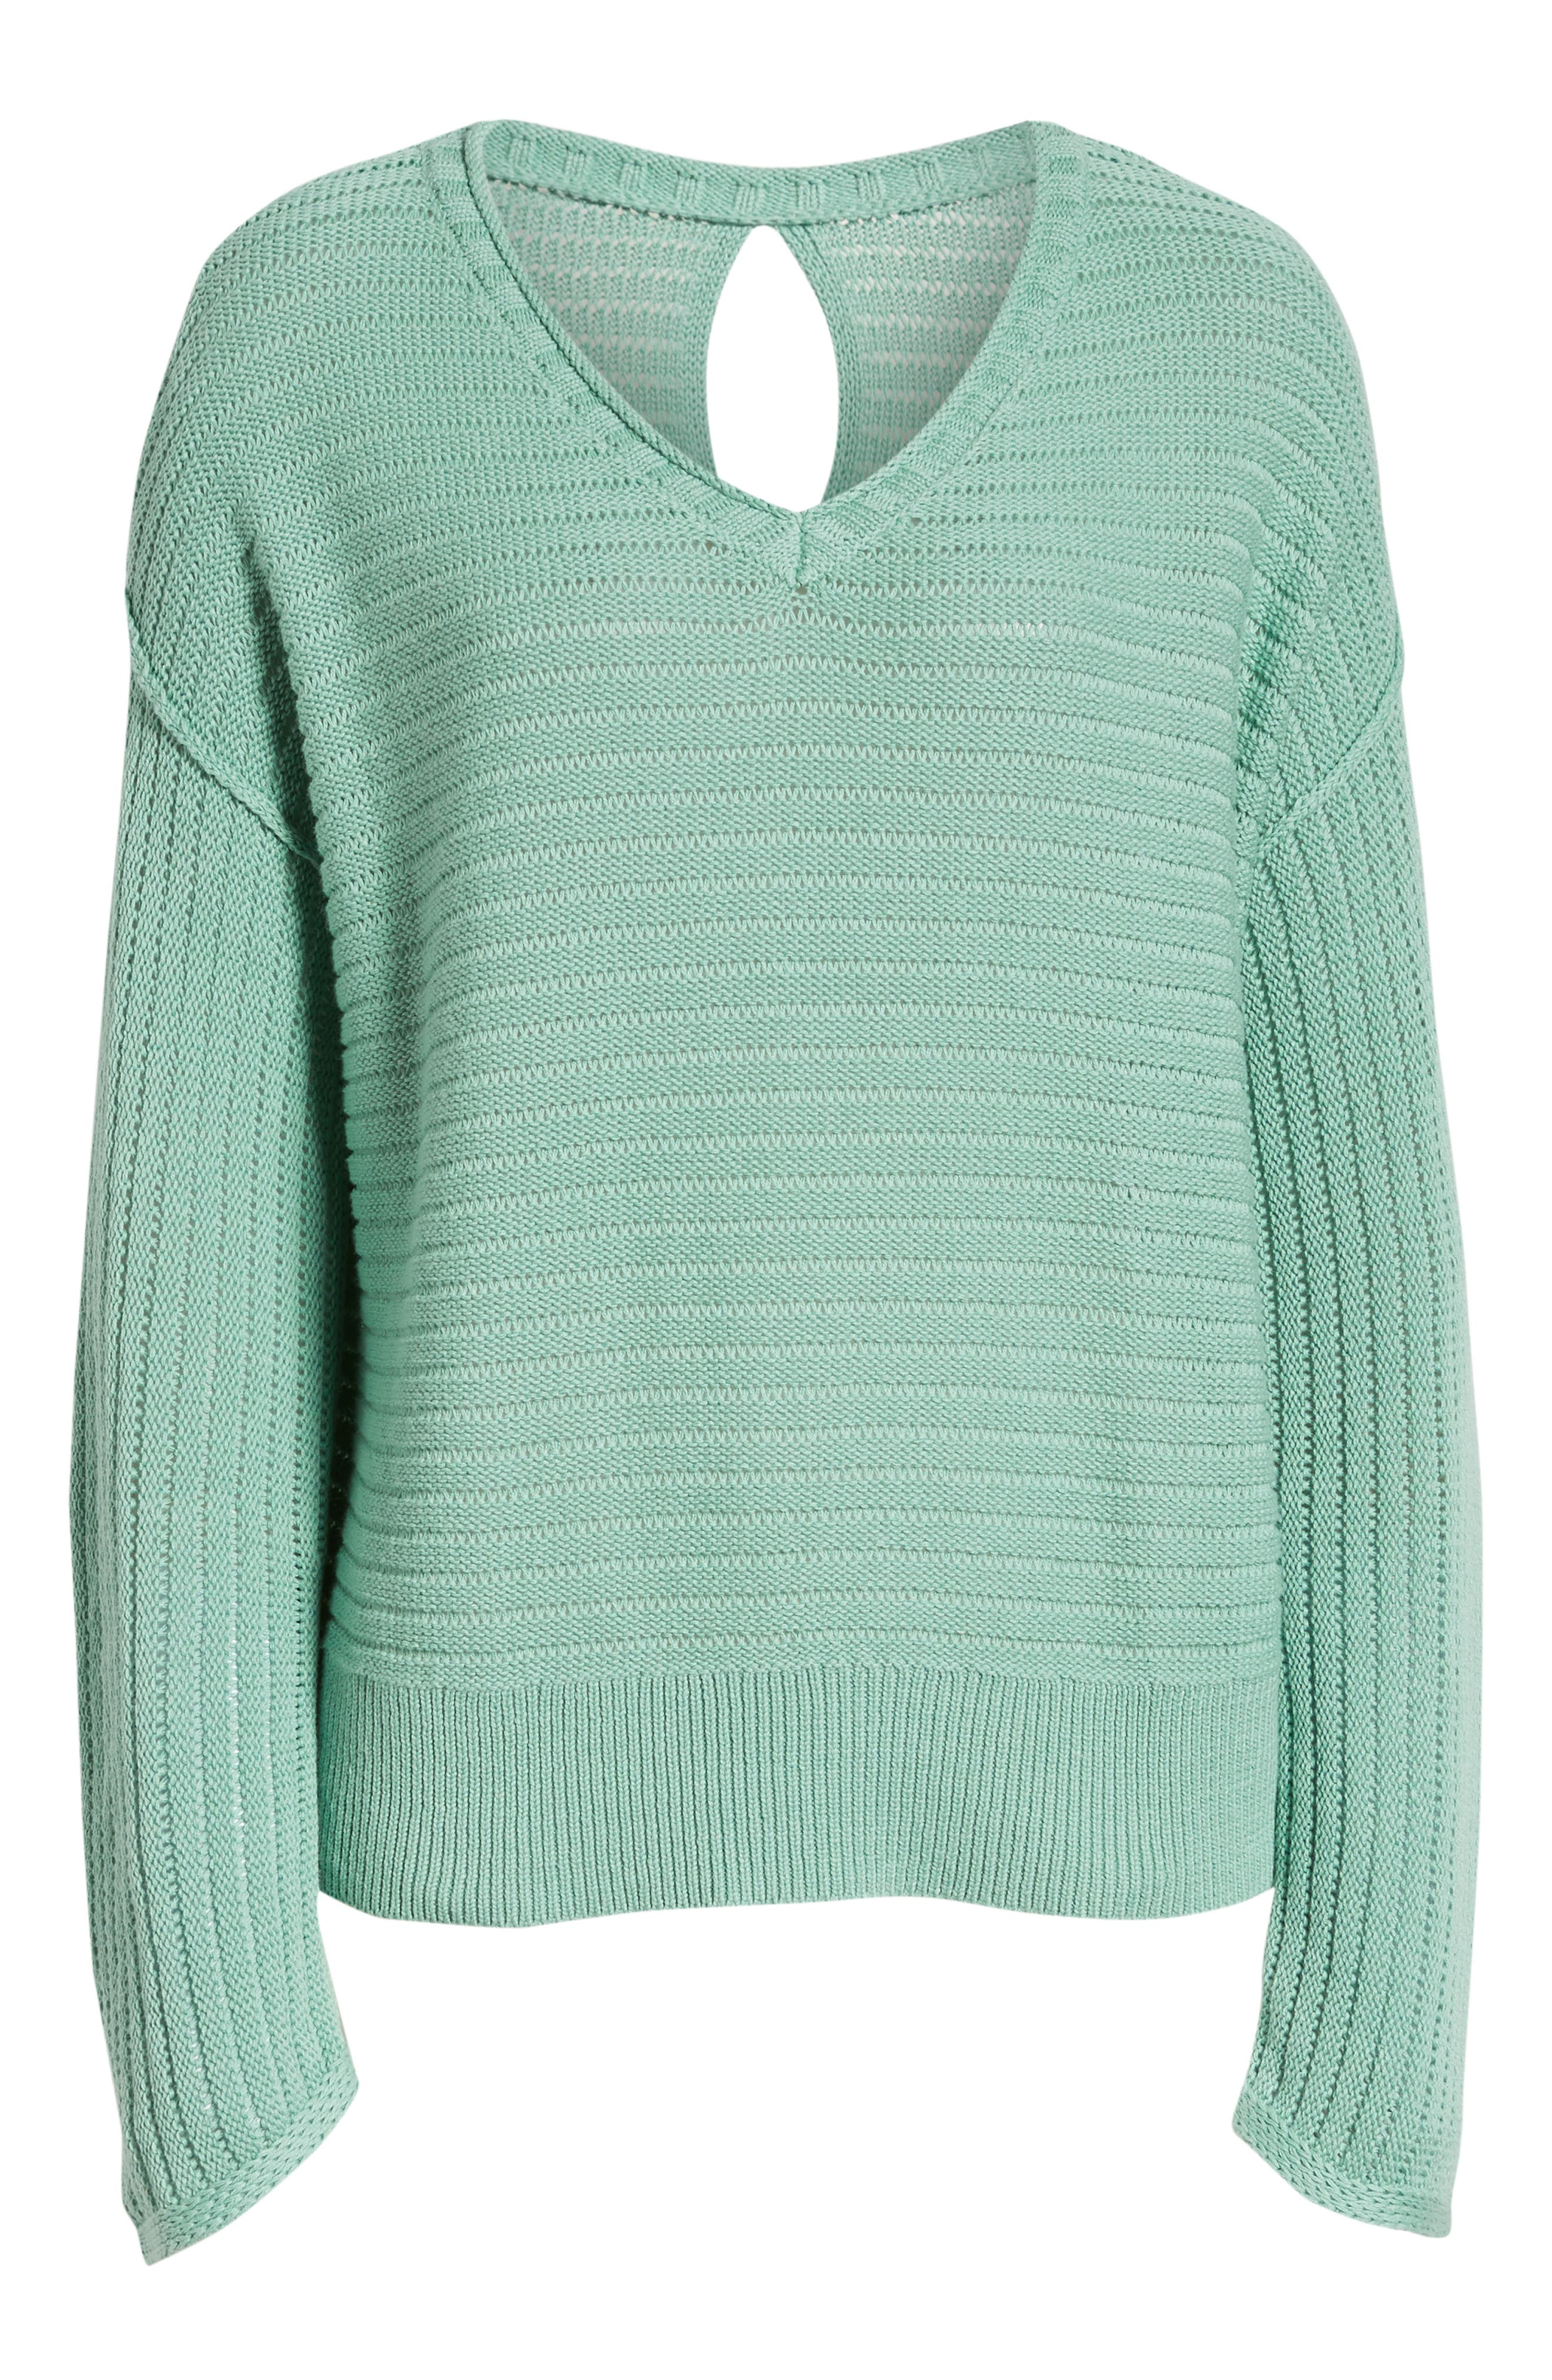 Tuck Stitch V-Neck Sweater,                             Alternate thumbnail 6, color,                             GREEN WING